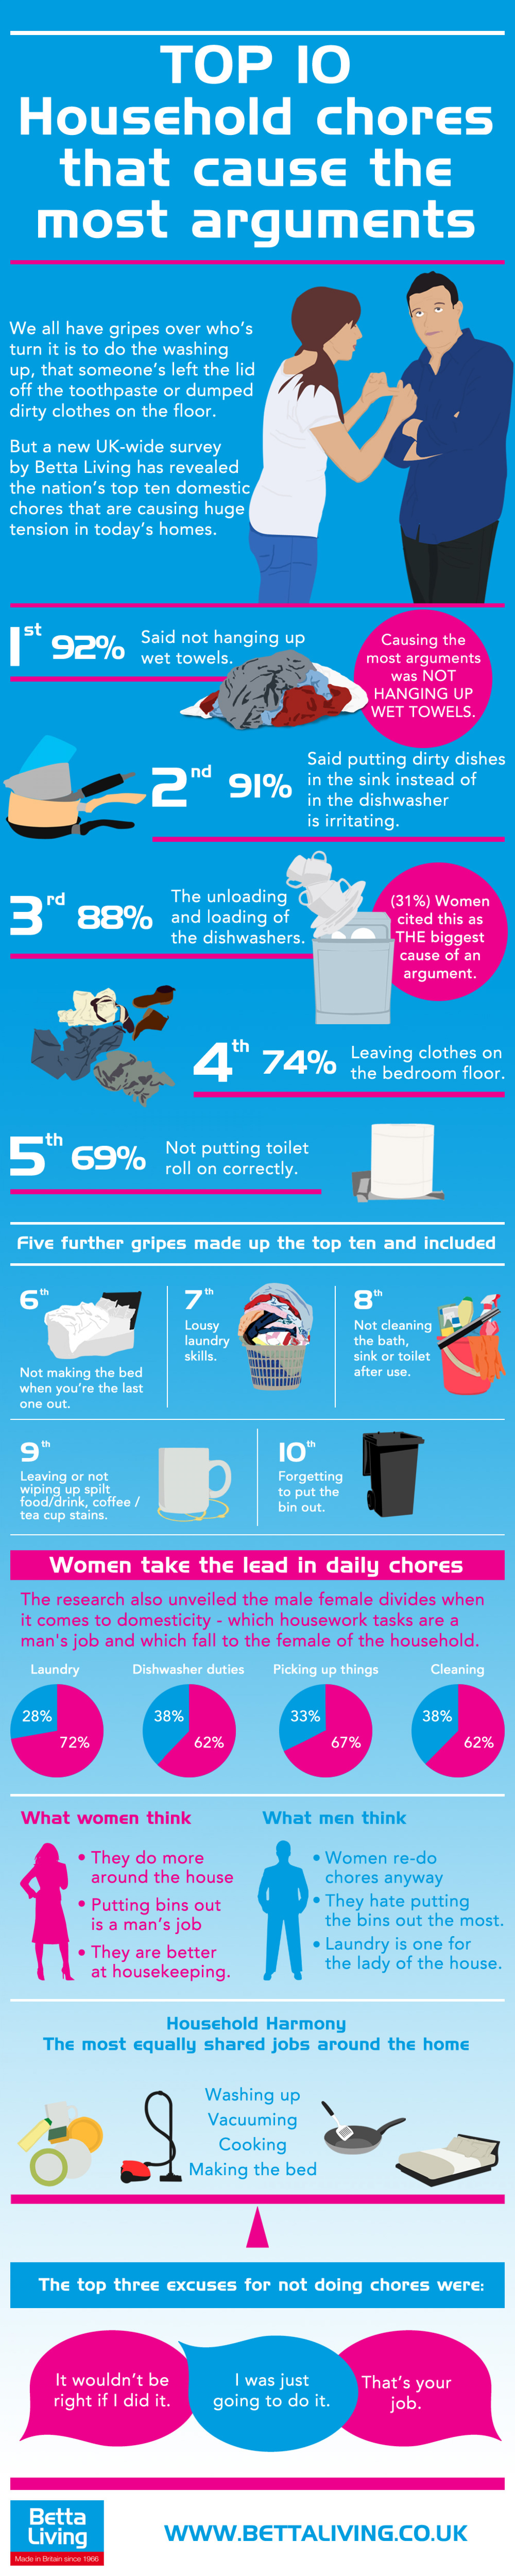 Top 10 household chores that cause the most arguments  Infographic